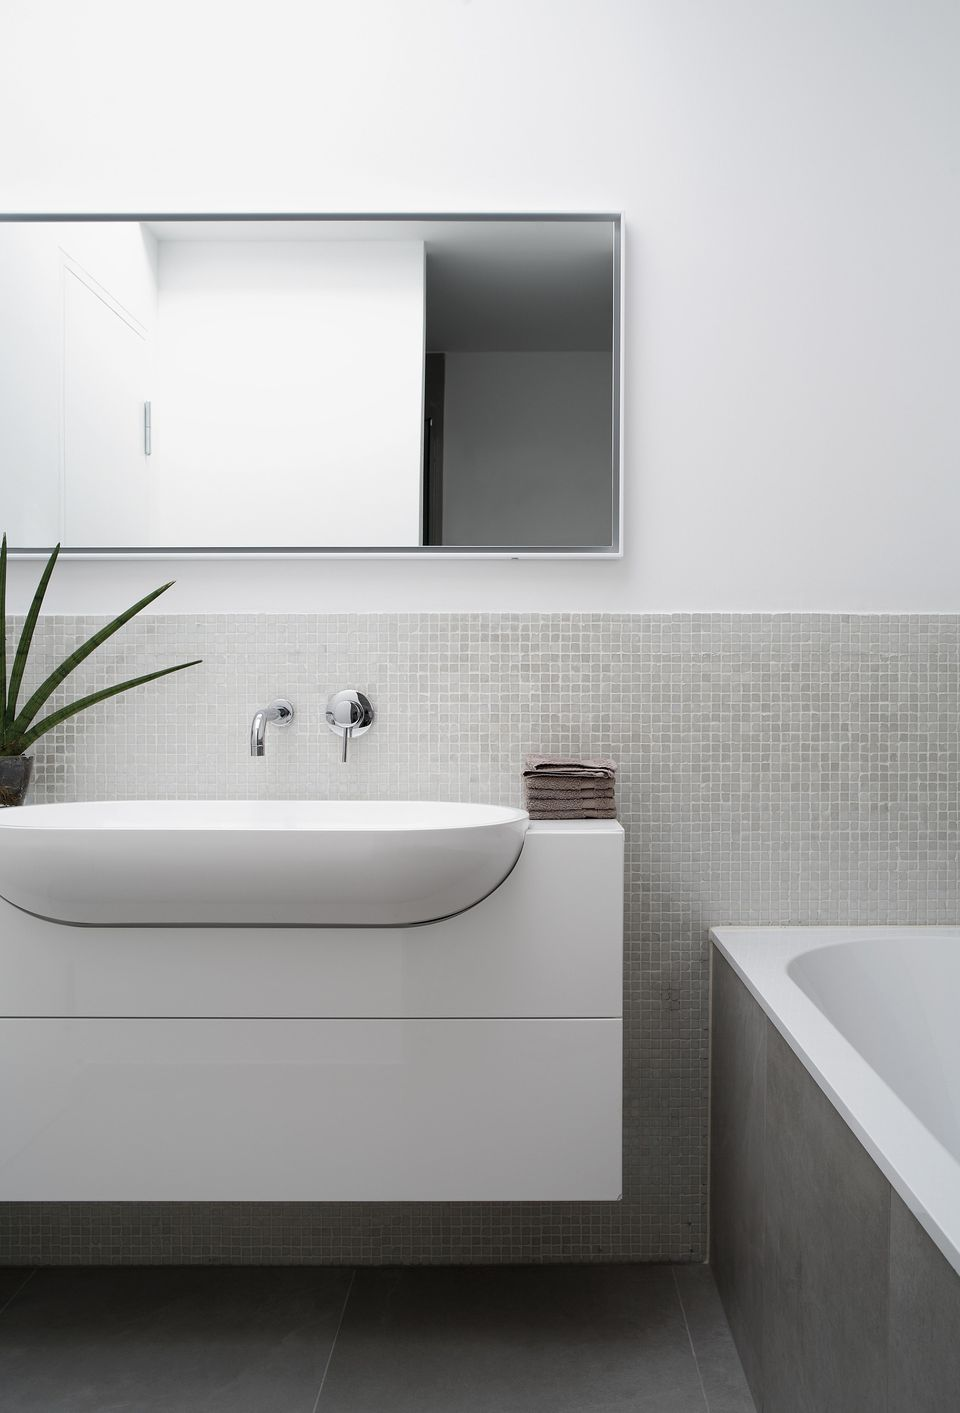 Ways To Cut Your Bathroom Renovation Costs - What's the average price to remodel a bathroom